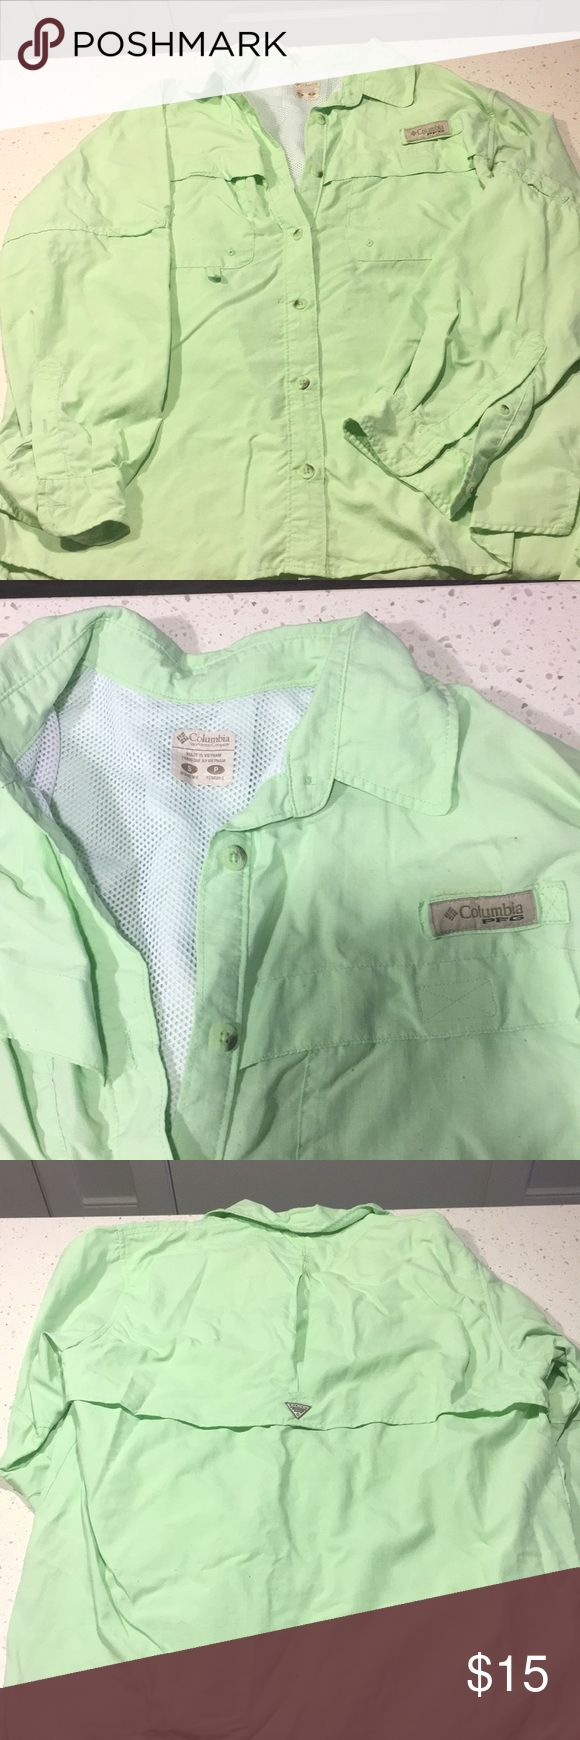 Columbia PFG women's shirt Light lime green women's PFG shirt. Size small. Lightly worn Columbia Tops Button Down Shirts